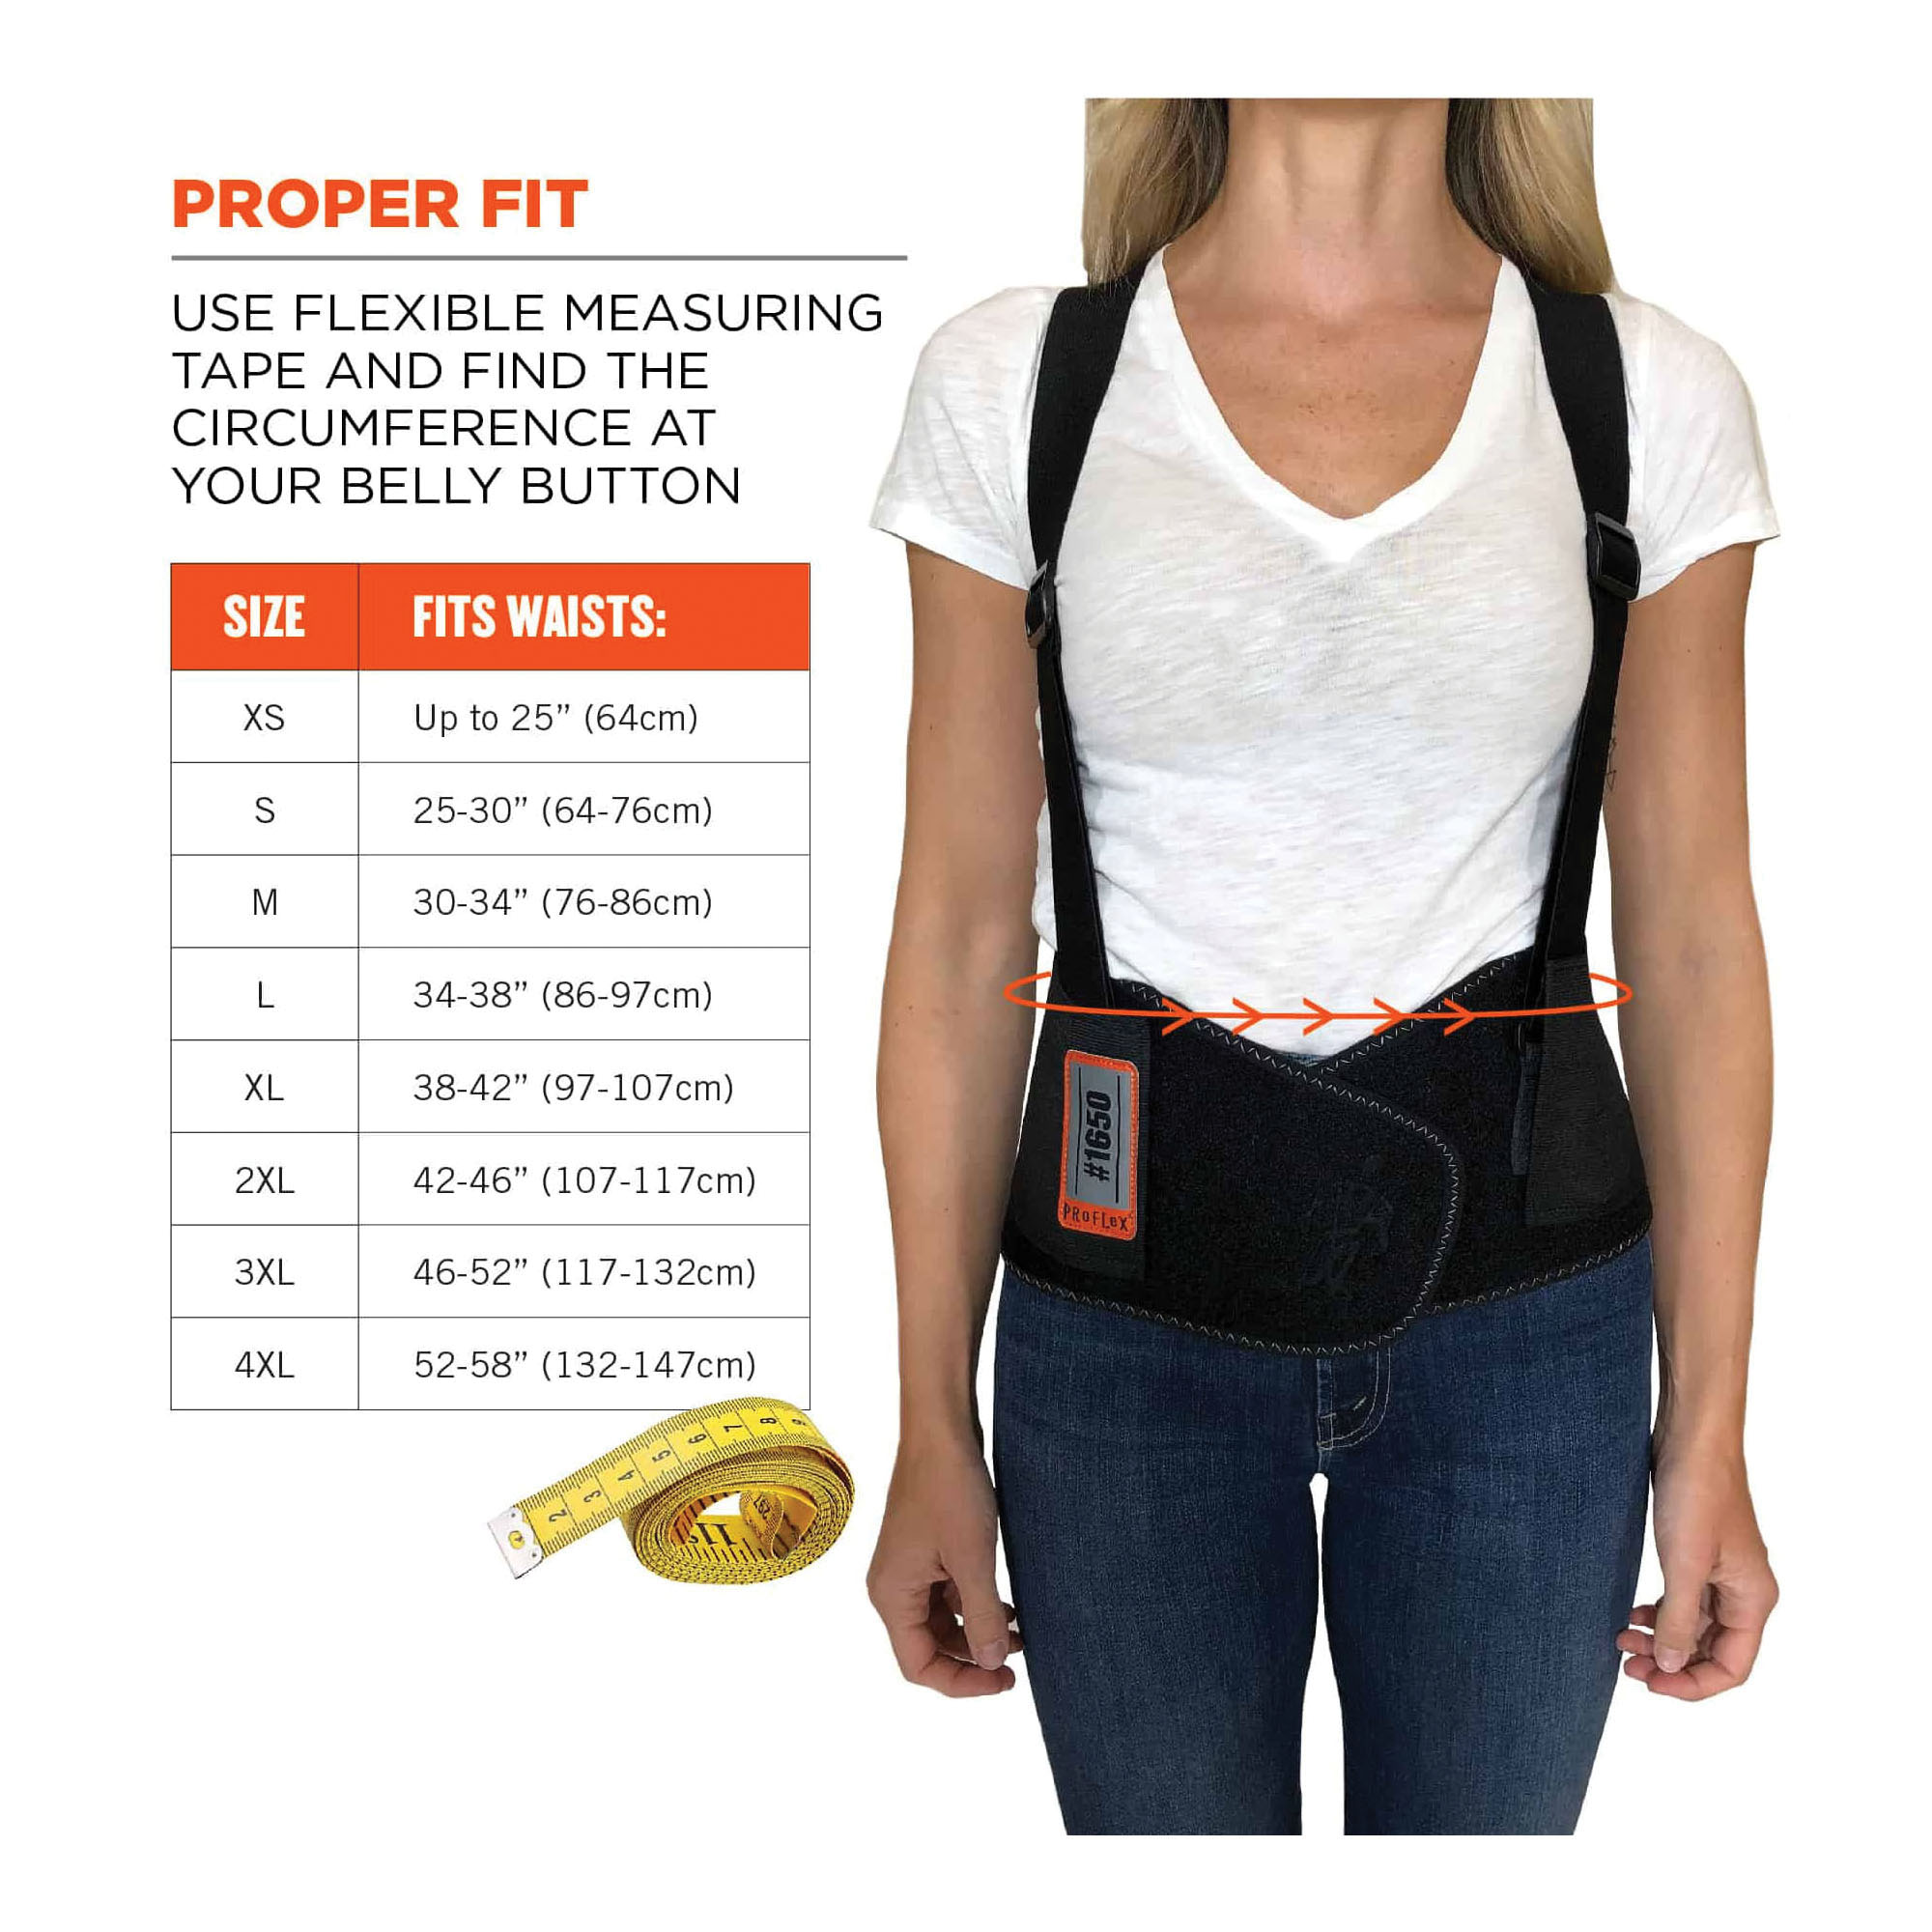 ProFlex® 11091 1650 Economy Back Support With Suspenders, XS, Up to 25 in Fits Waist, 7-1/2 in W, Rubber Webbing, Black, Hook and Loop Closure